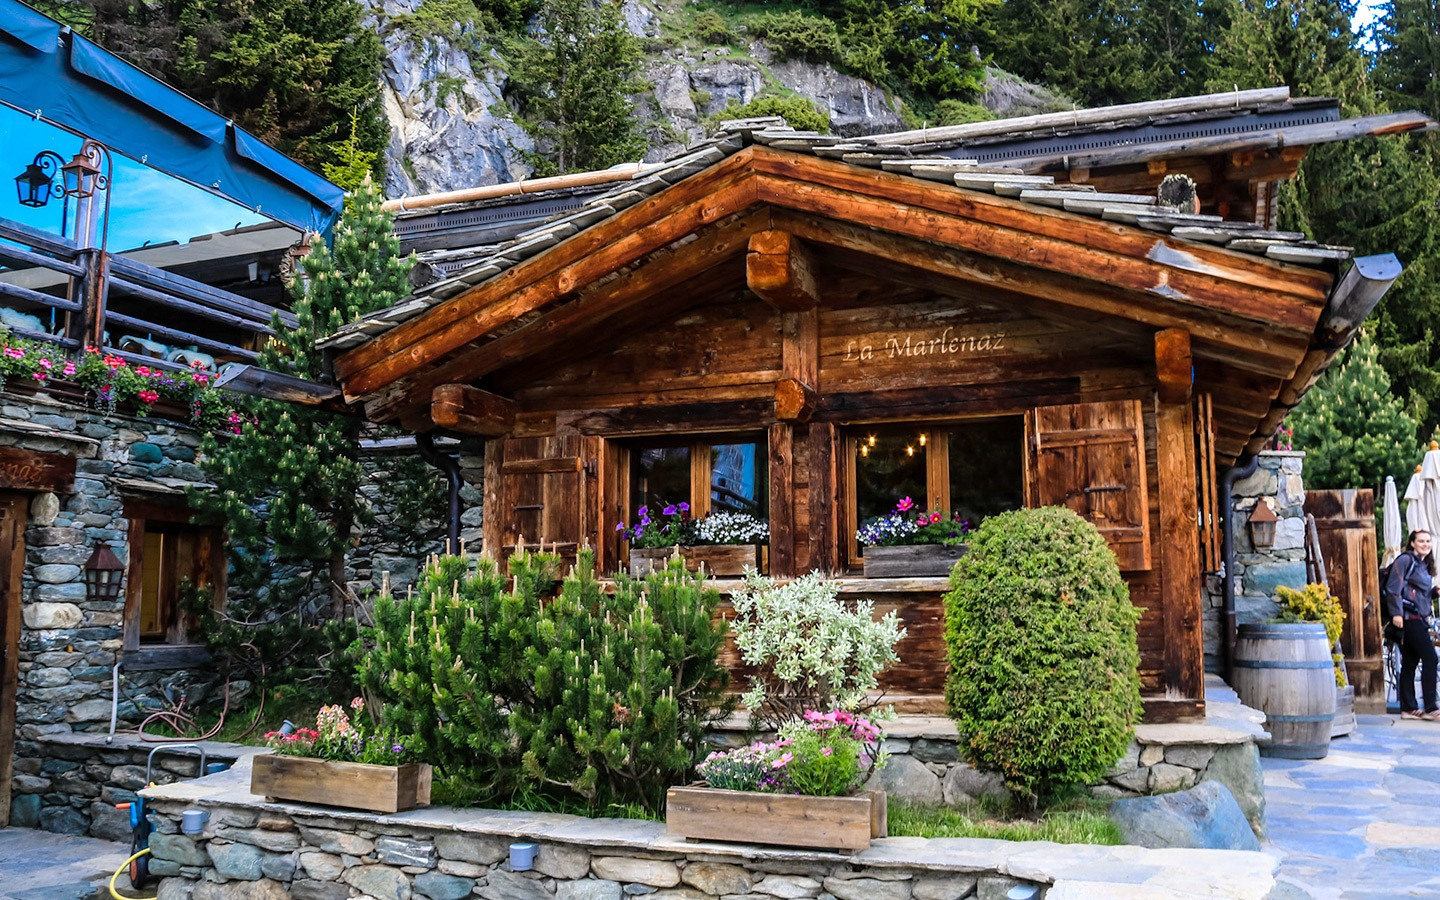 Wooden mountain restaurant in the Swiss Alps